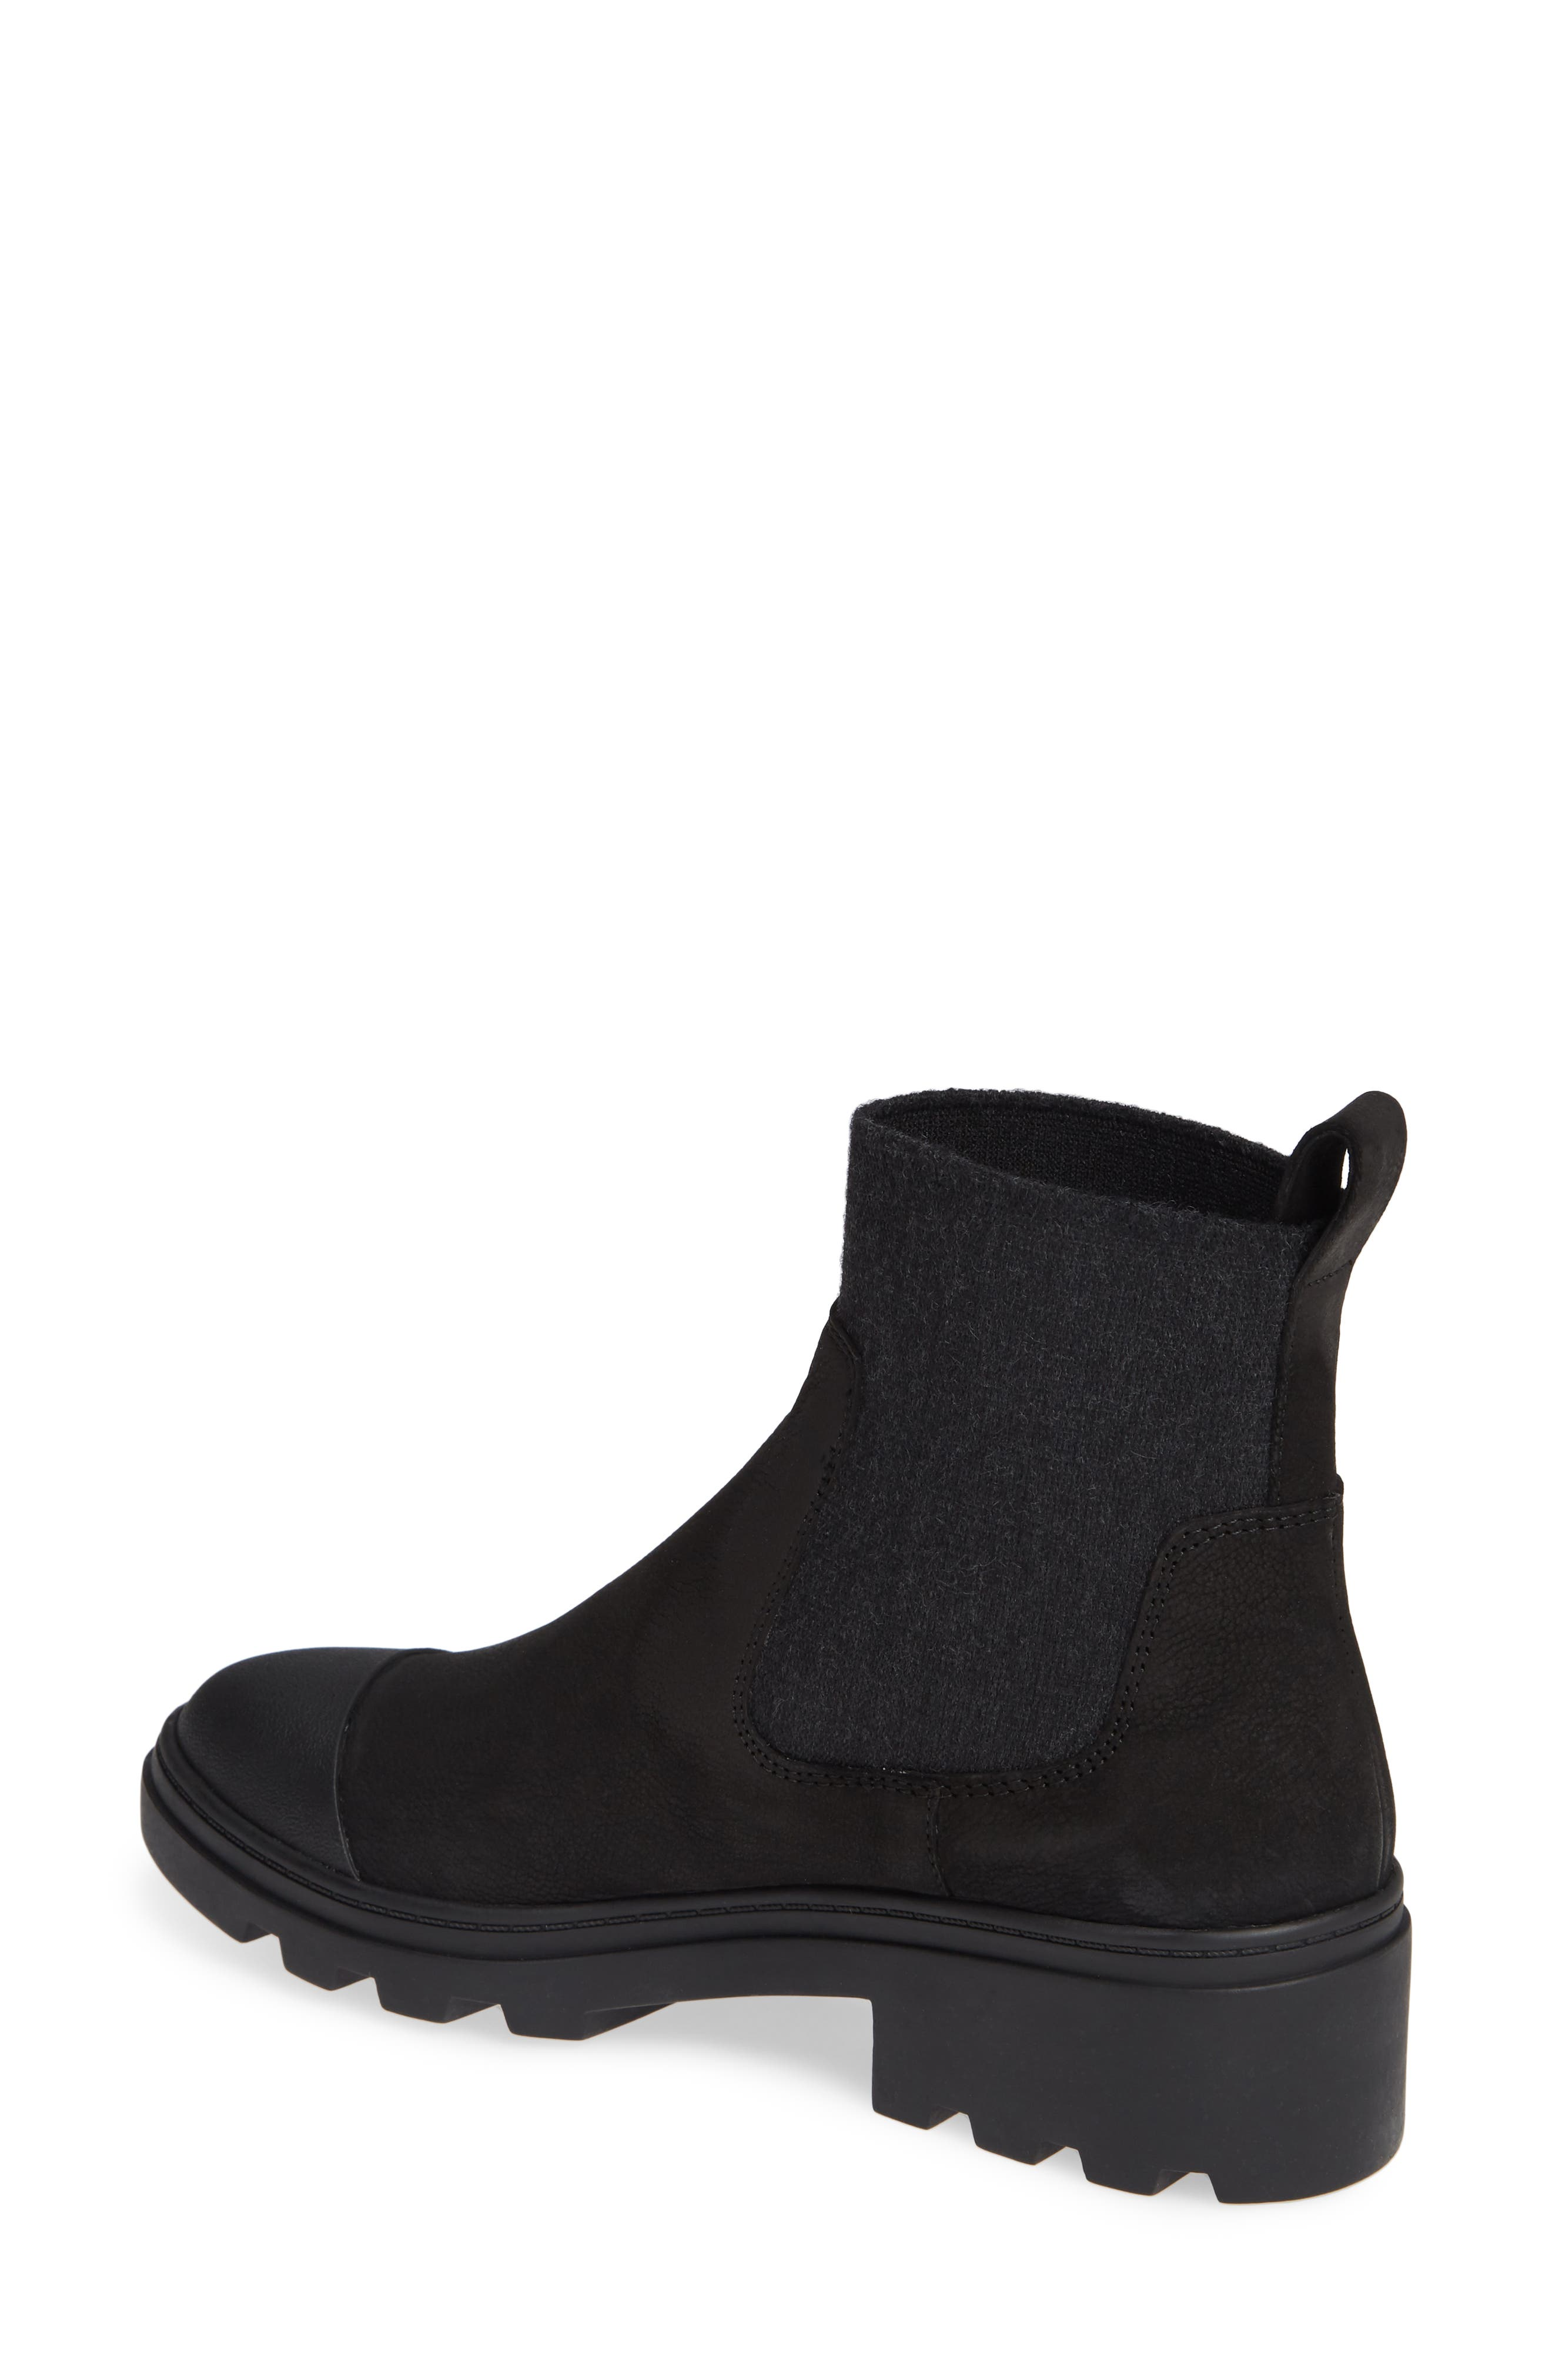 EILEEN FISHER,                             Teddy Bootie,                             Alternate thumbnail 2, color,                             001